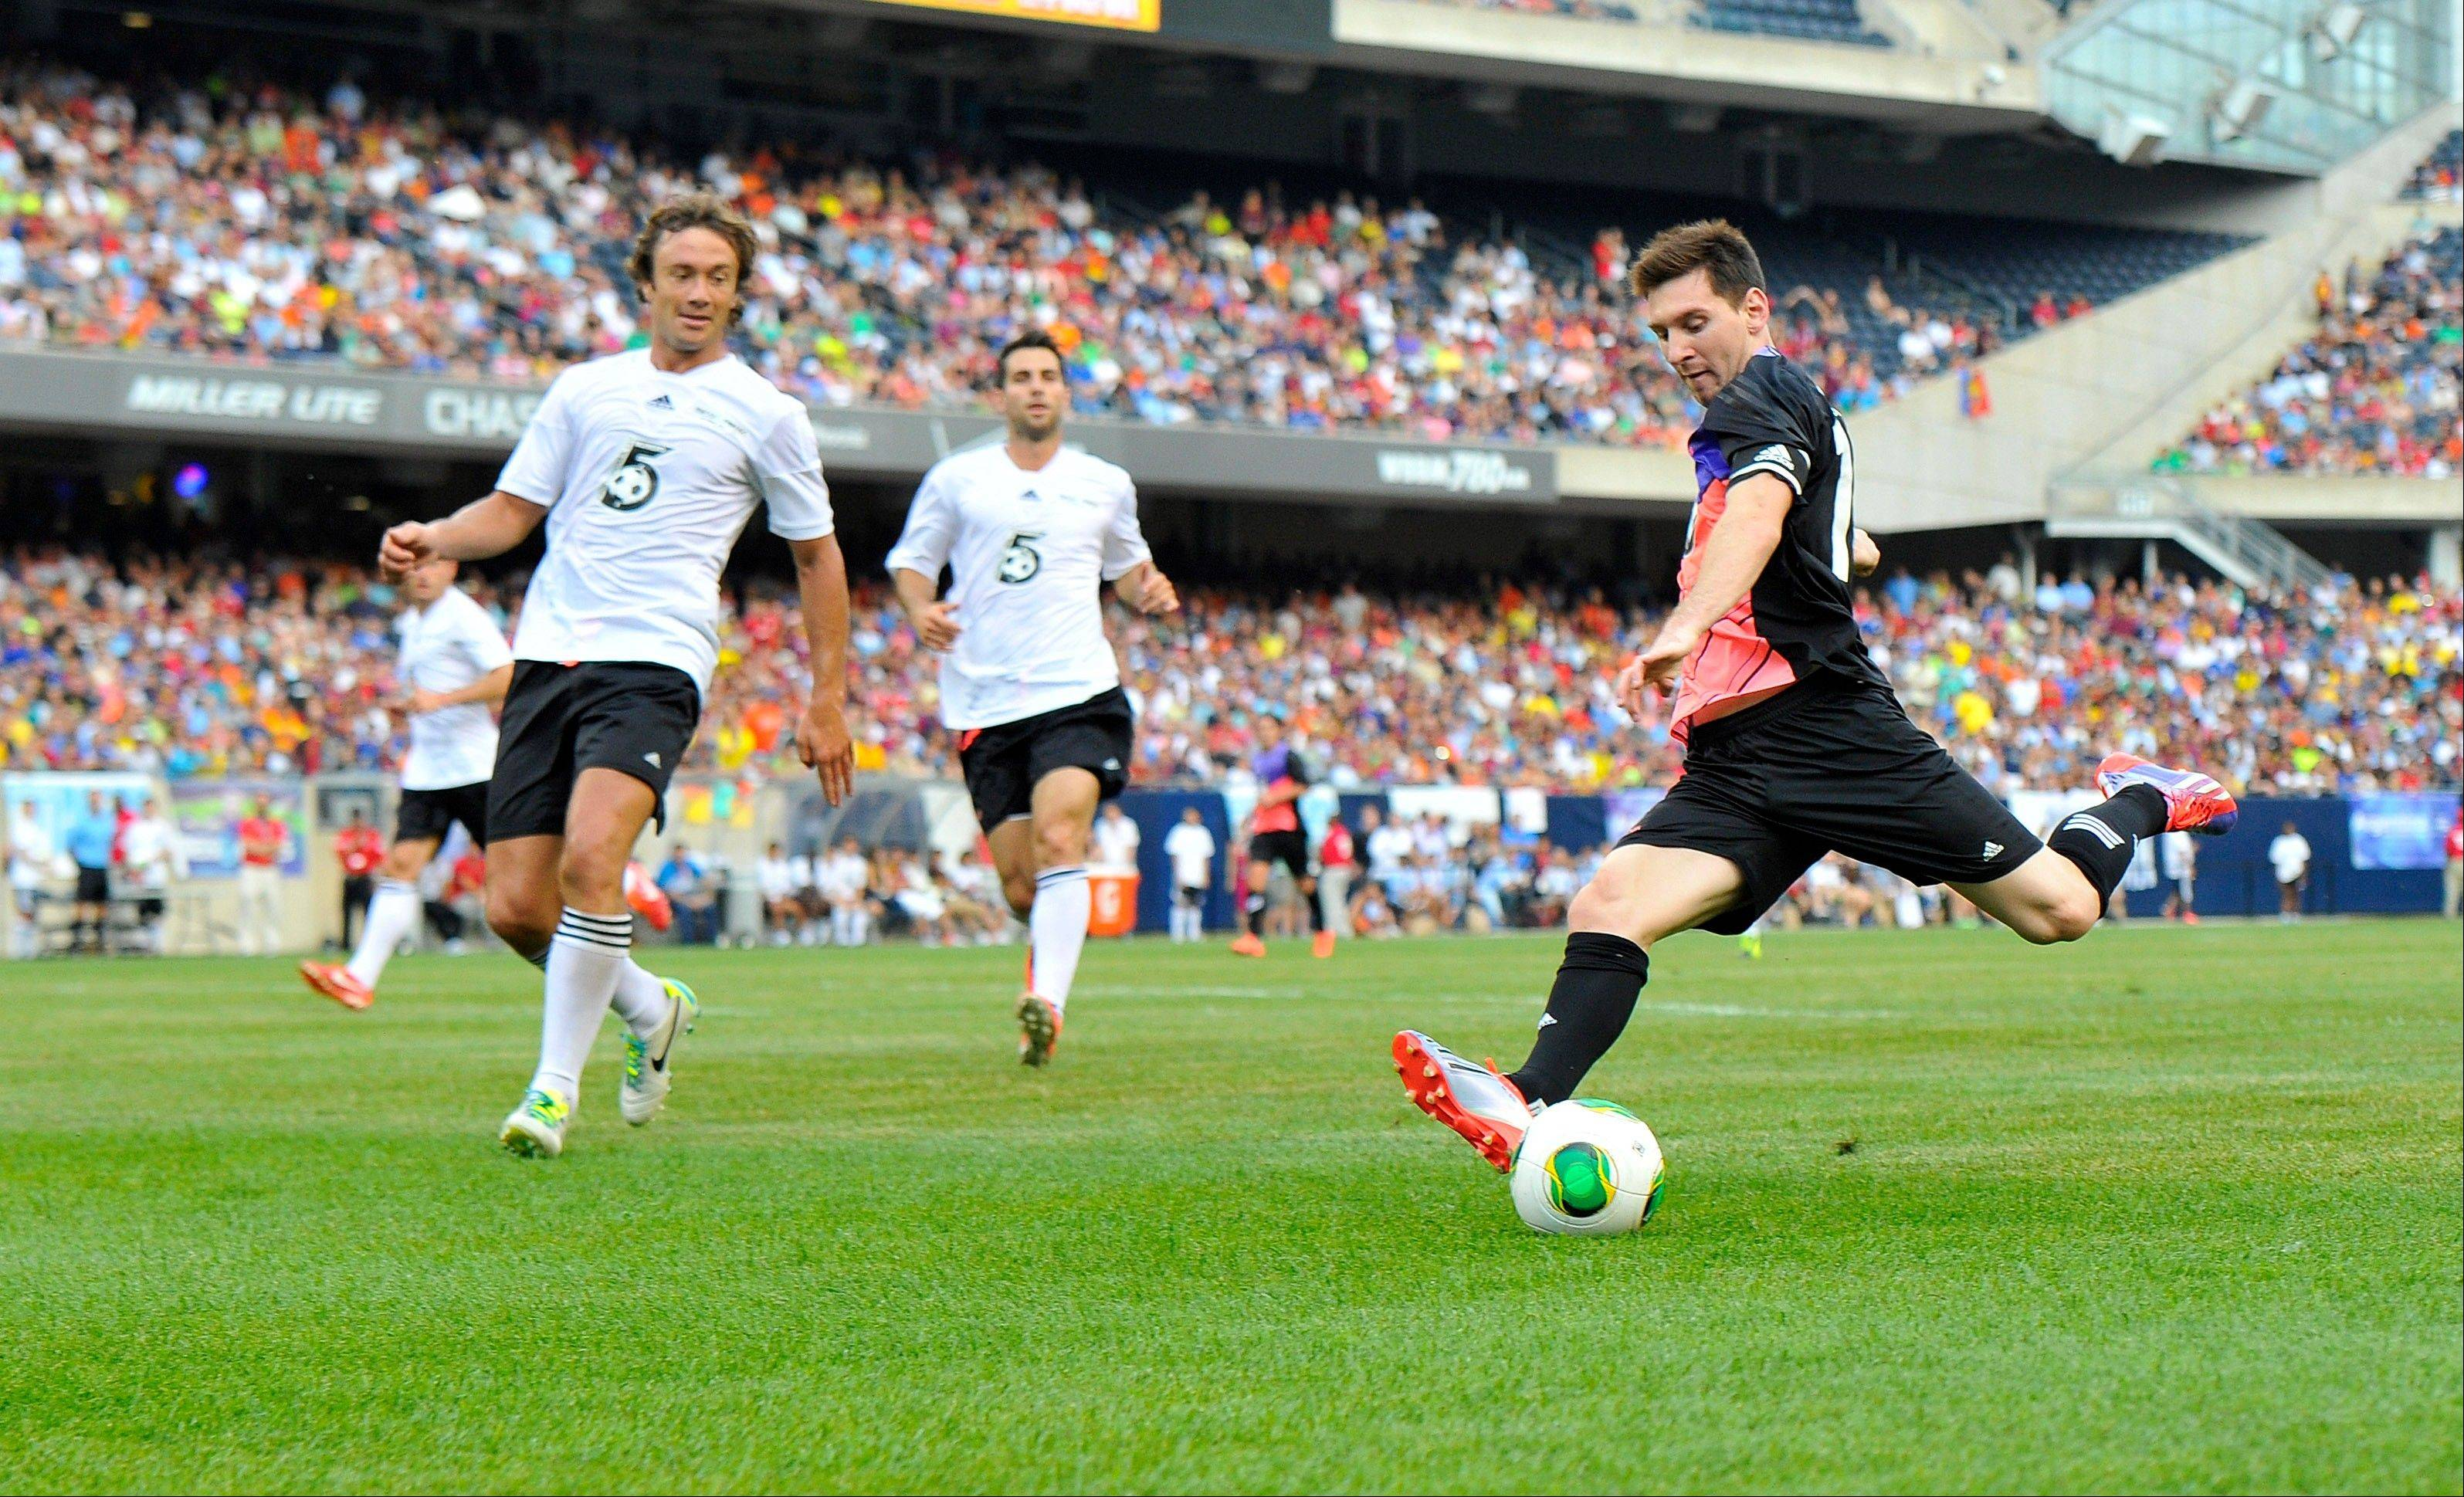 Messi's Friends' Lionel Messi, right, shoots against the Rest of the World during the first half of the Messi and Friends charity soccer exhibition, Saturday, July 6, 2013 in Chicago.